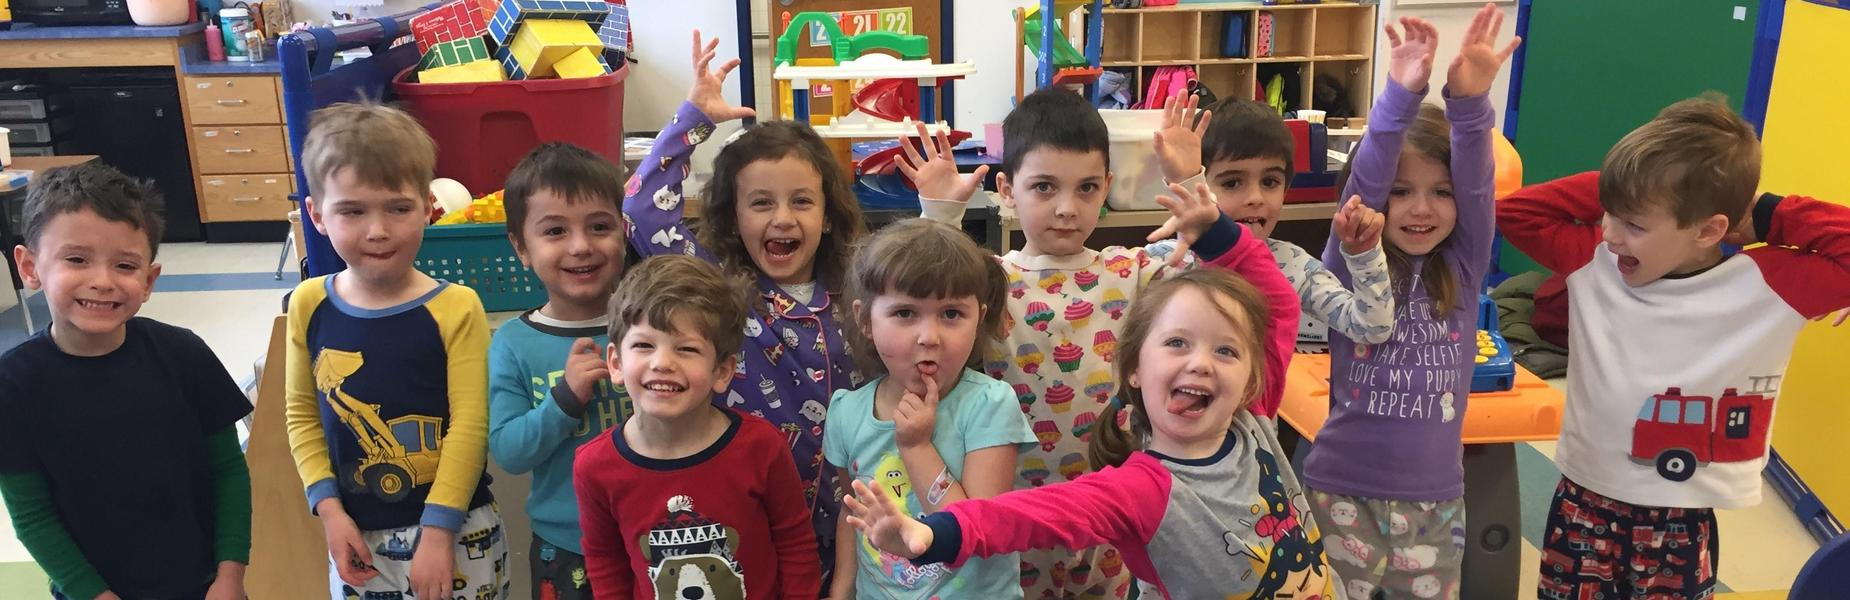 Pre-kindergartners at Lincoln School have fun as they pose for a picture on Pajama Day.